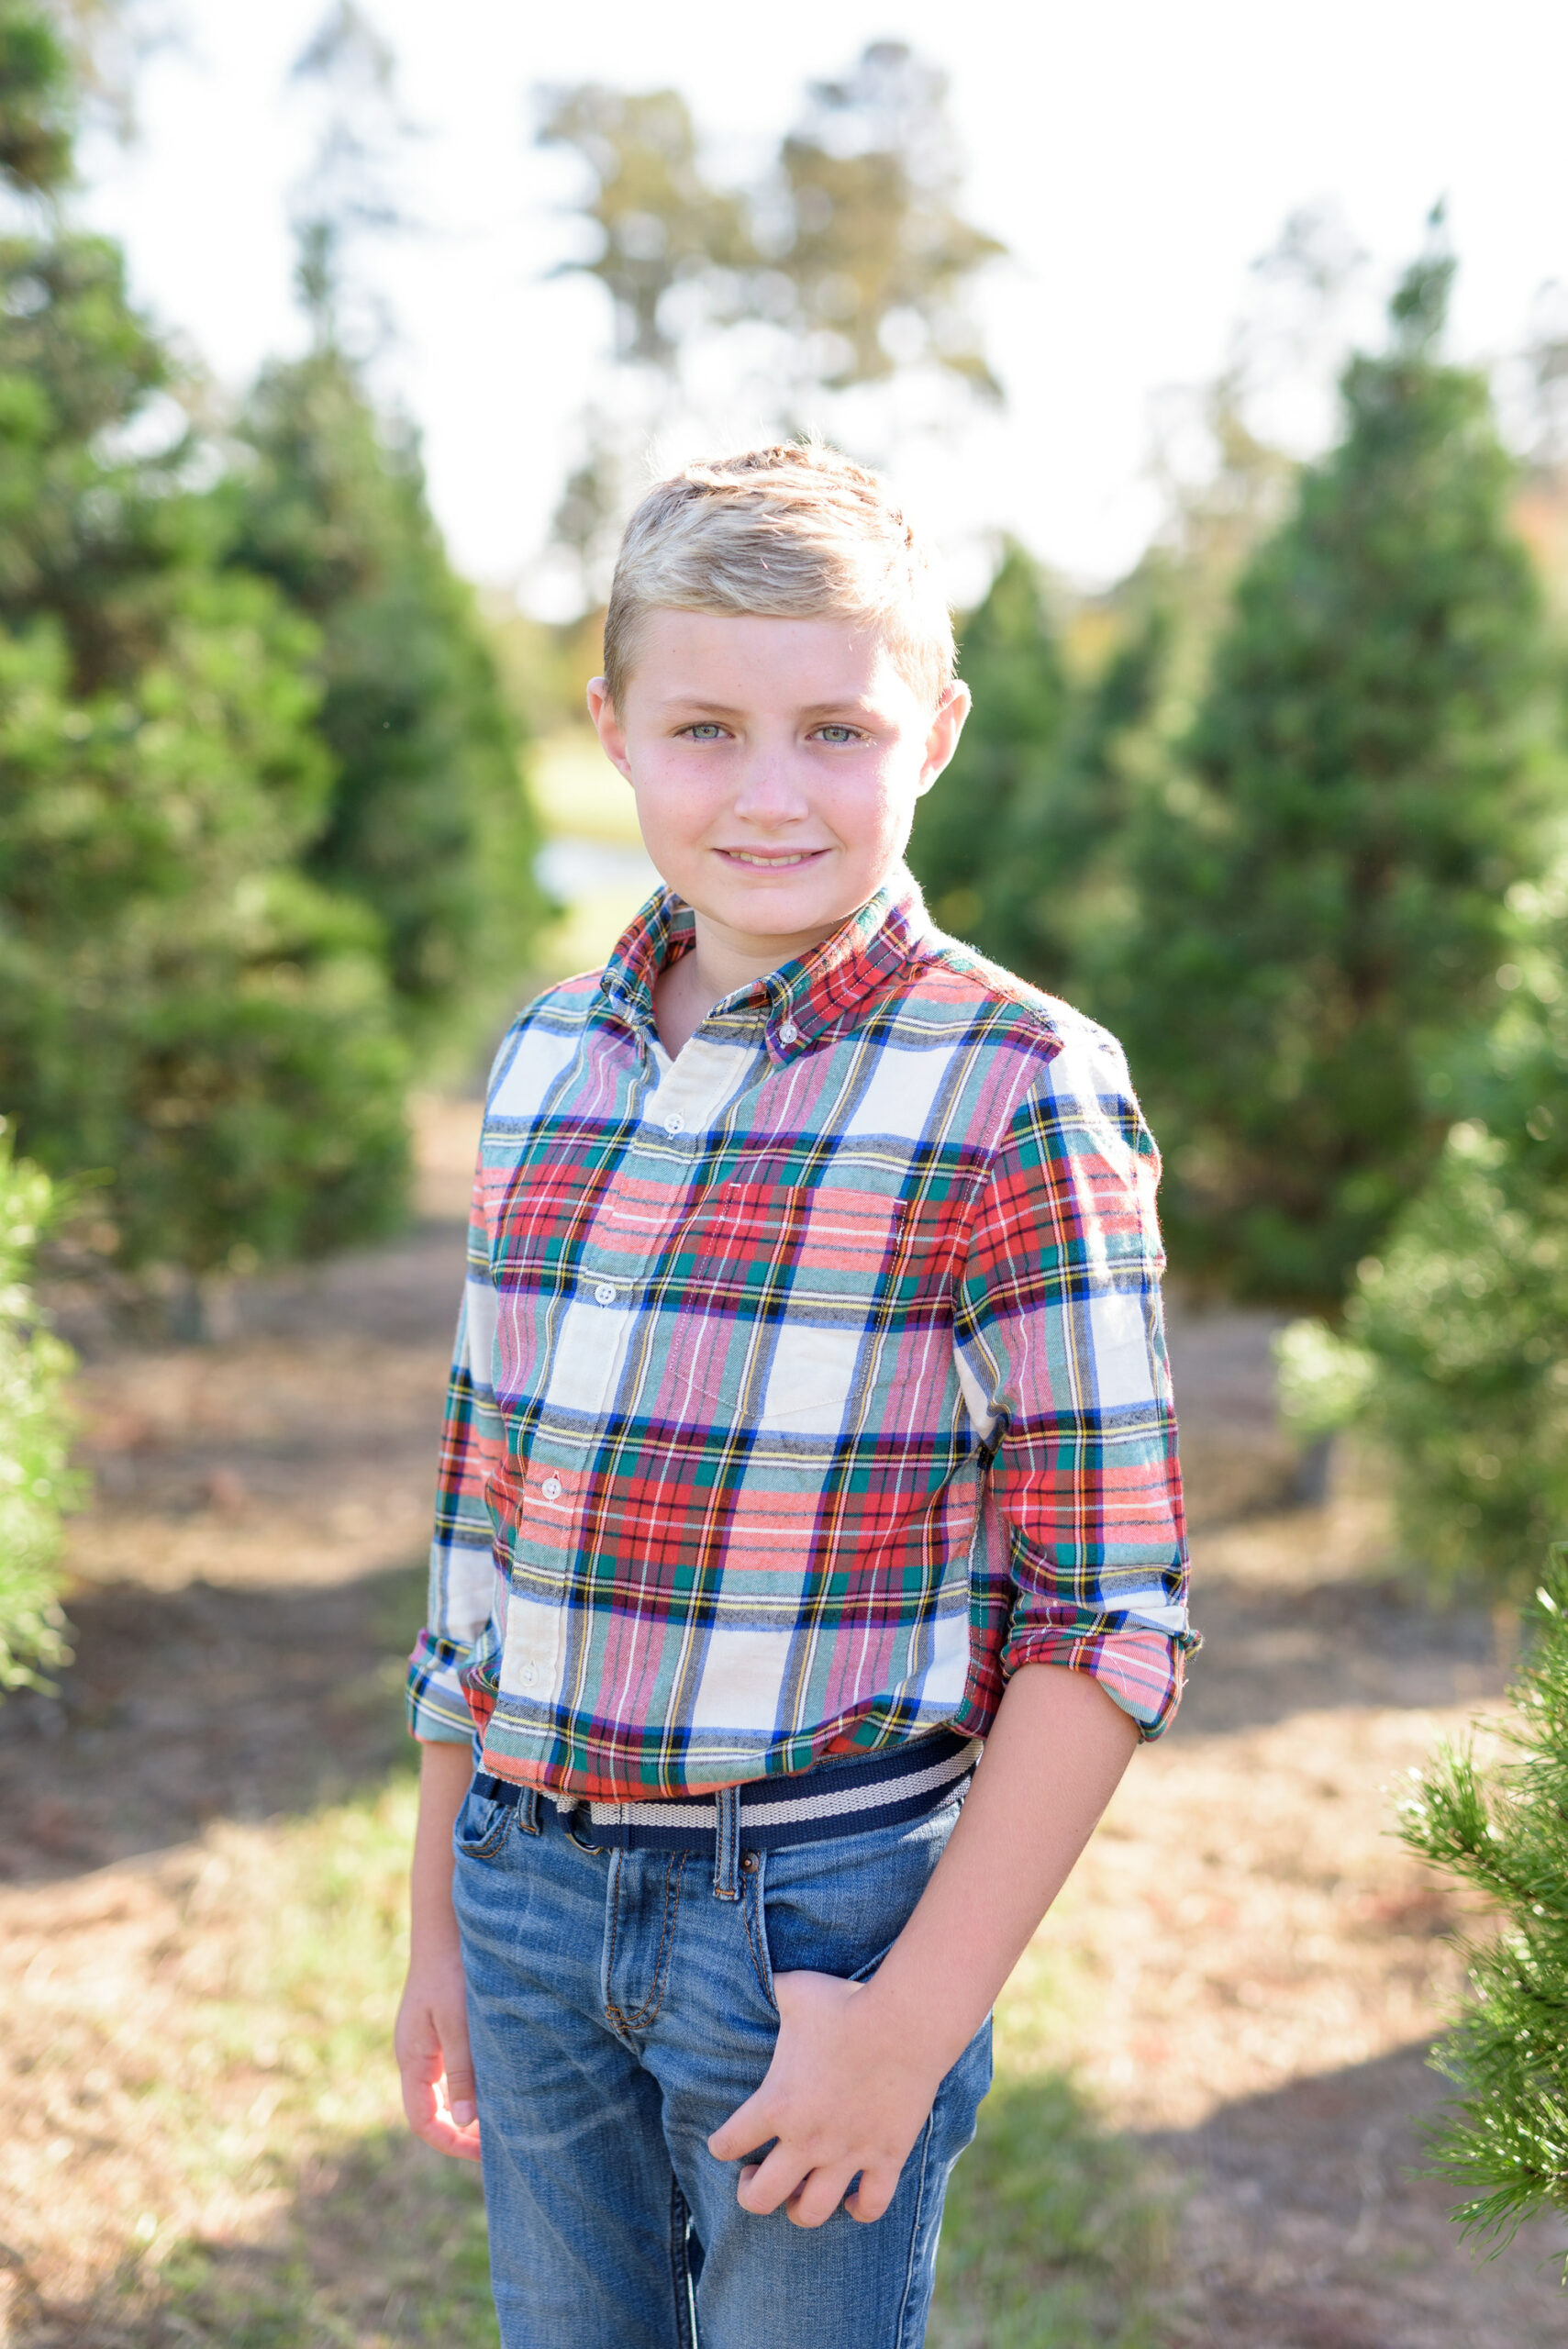 Christmas Tree Farm Photos by popular Houston lifestyle blog, Fancy Ashley: image of a boy standing in a row of pine trees and wearing a plaid button up shirt and jeans.